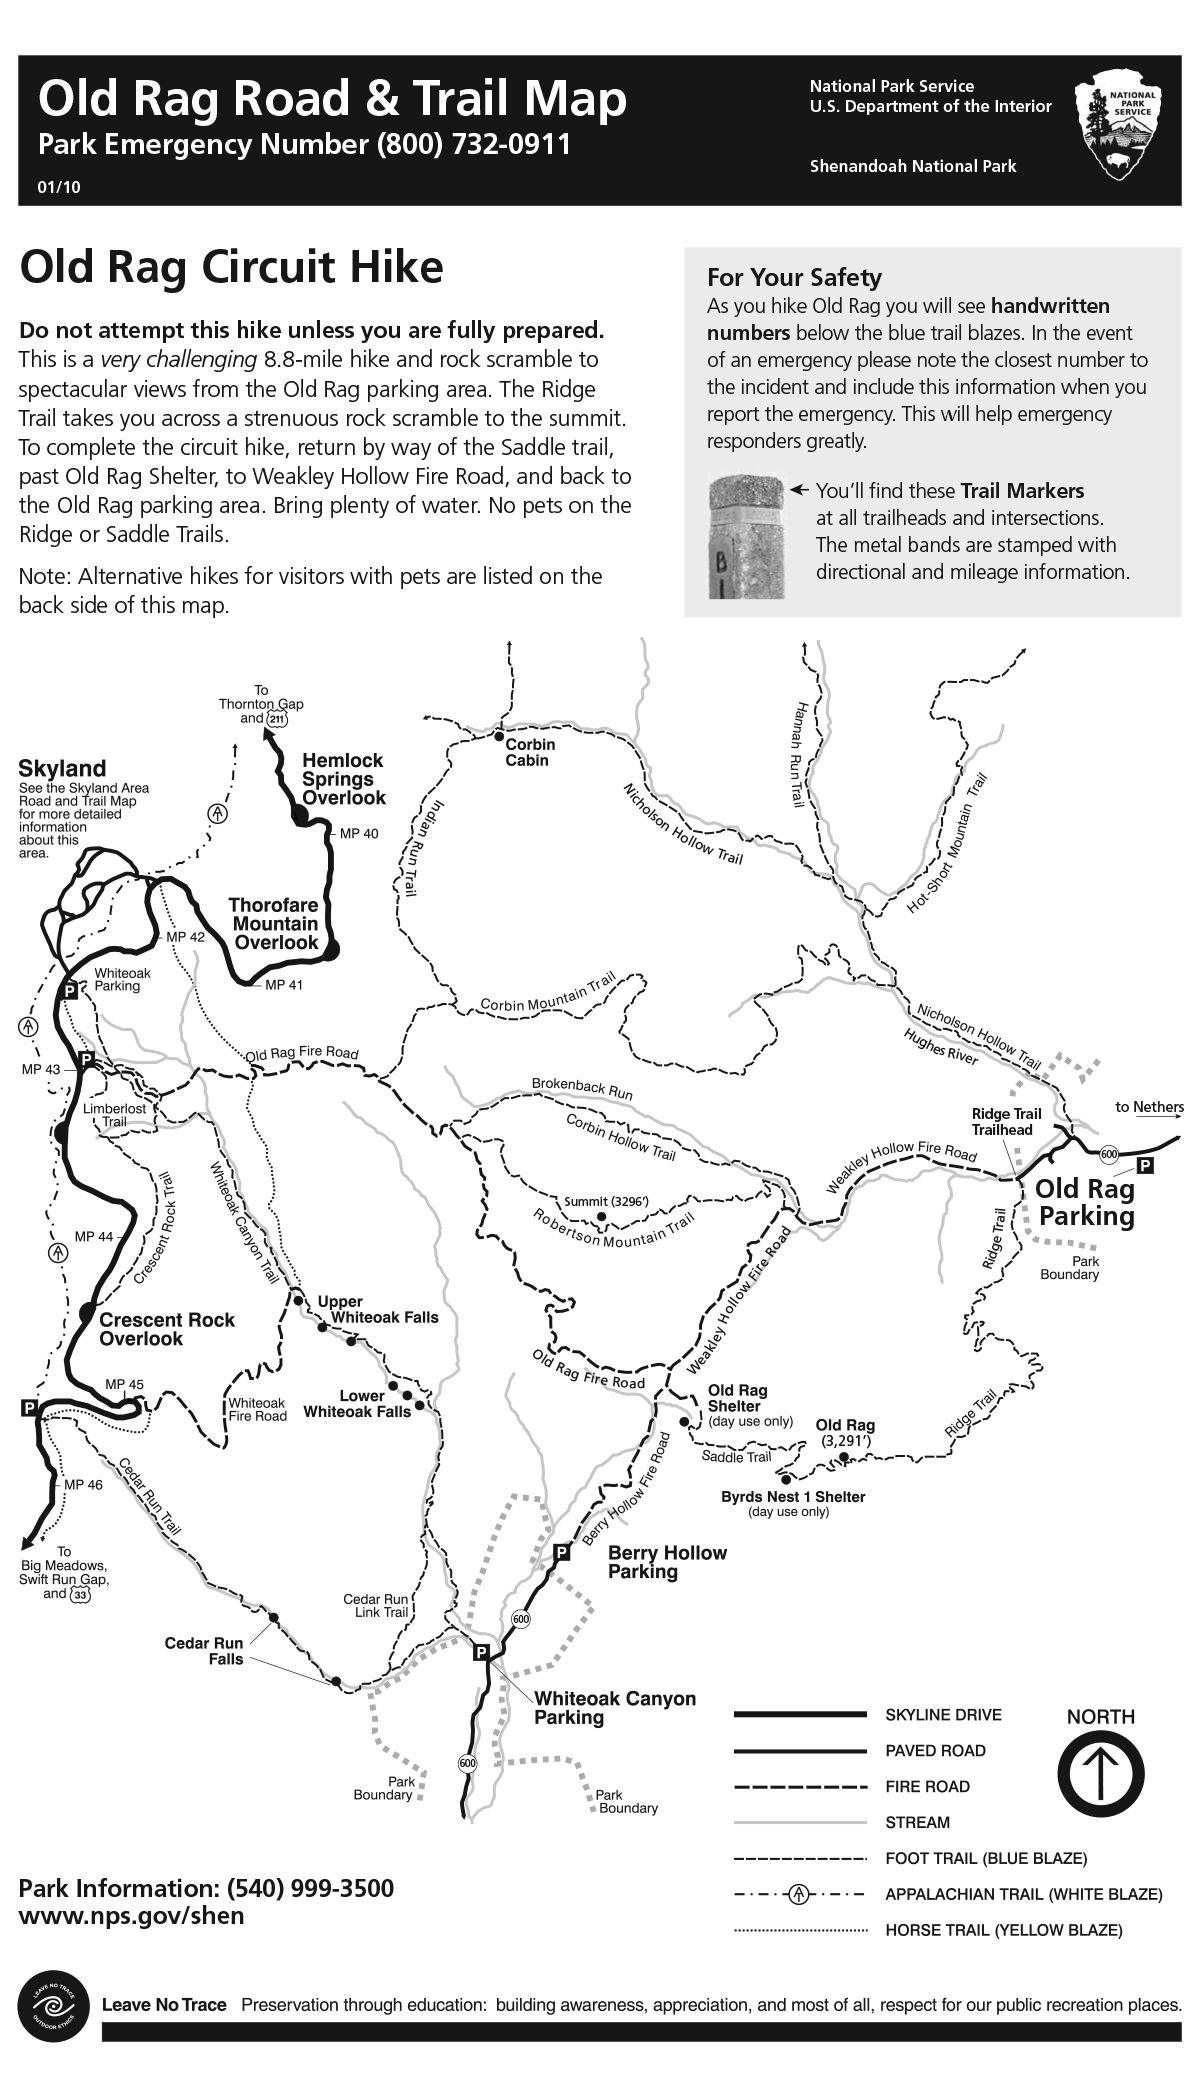 Trail map for hiking Old Rag VIRGINIA HIKING TRAIL Pinterest